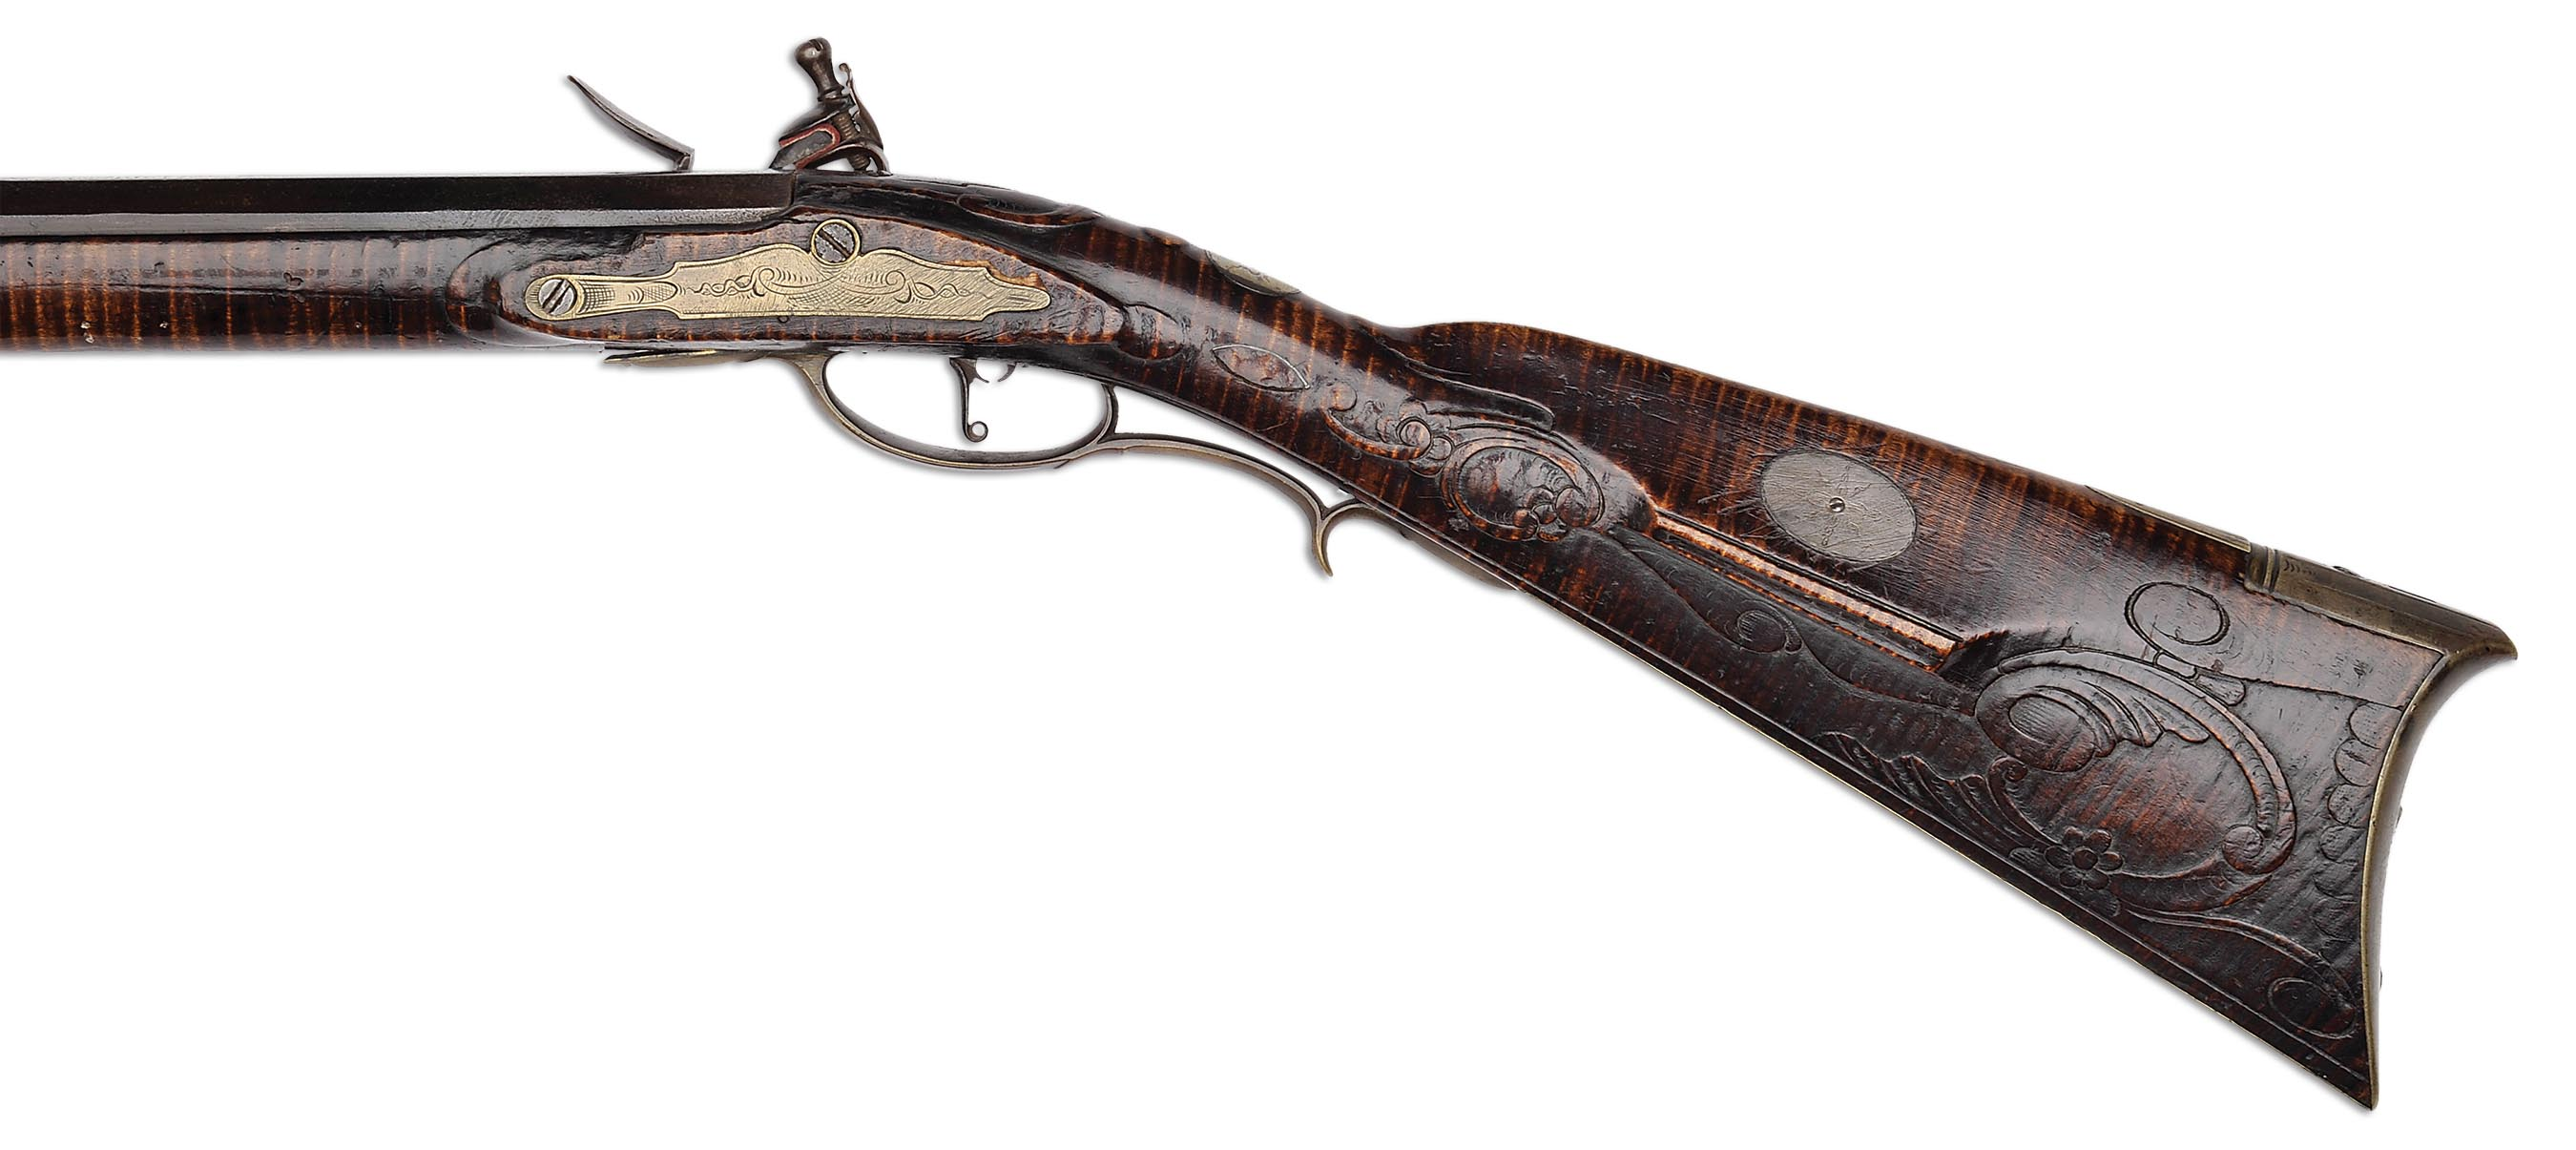 James d julia s october firearms auction to feature rare